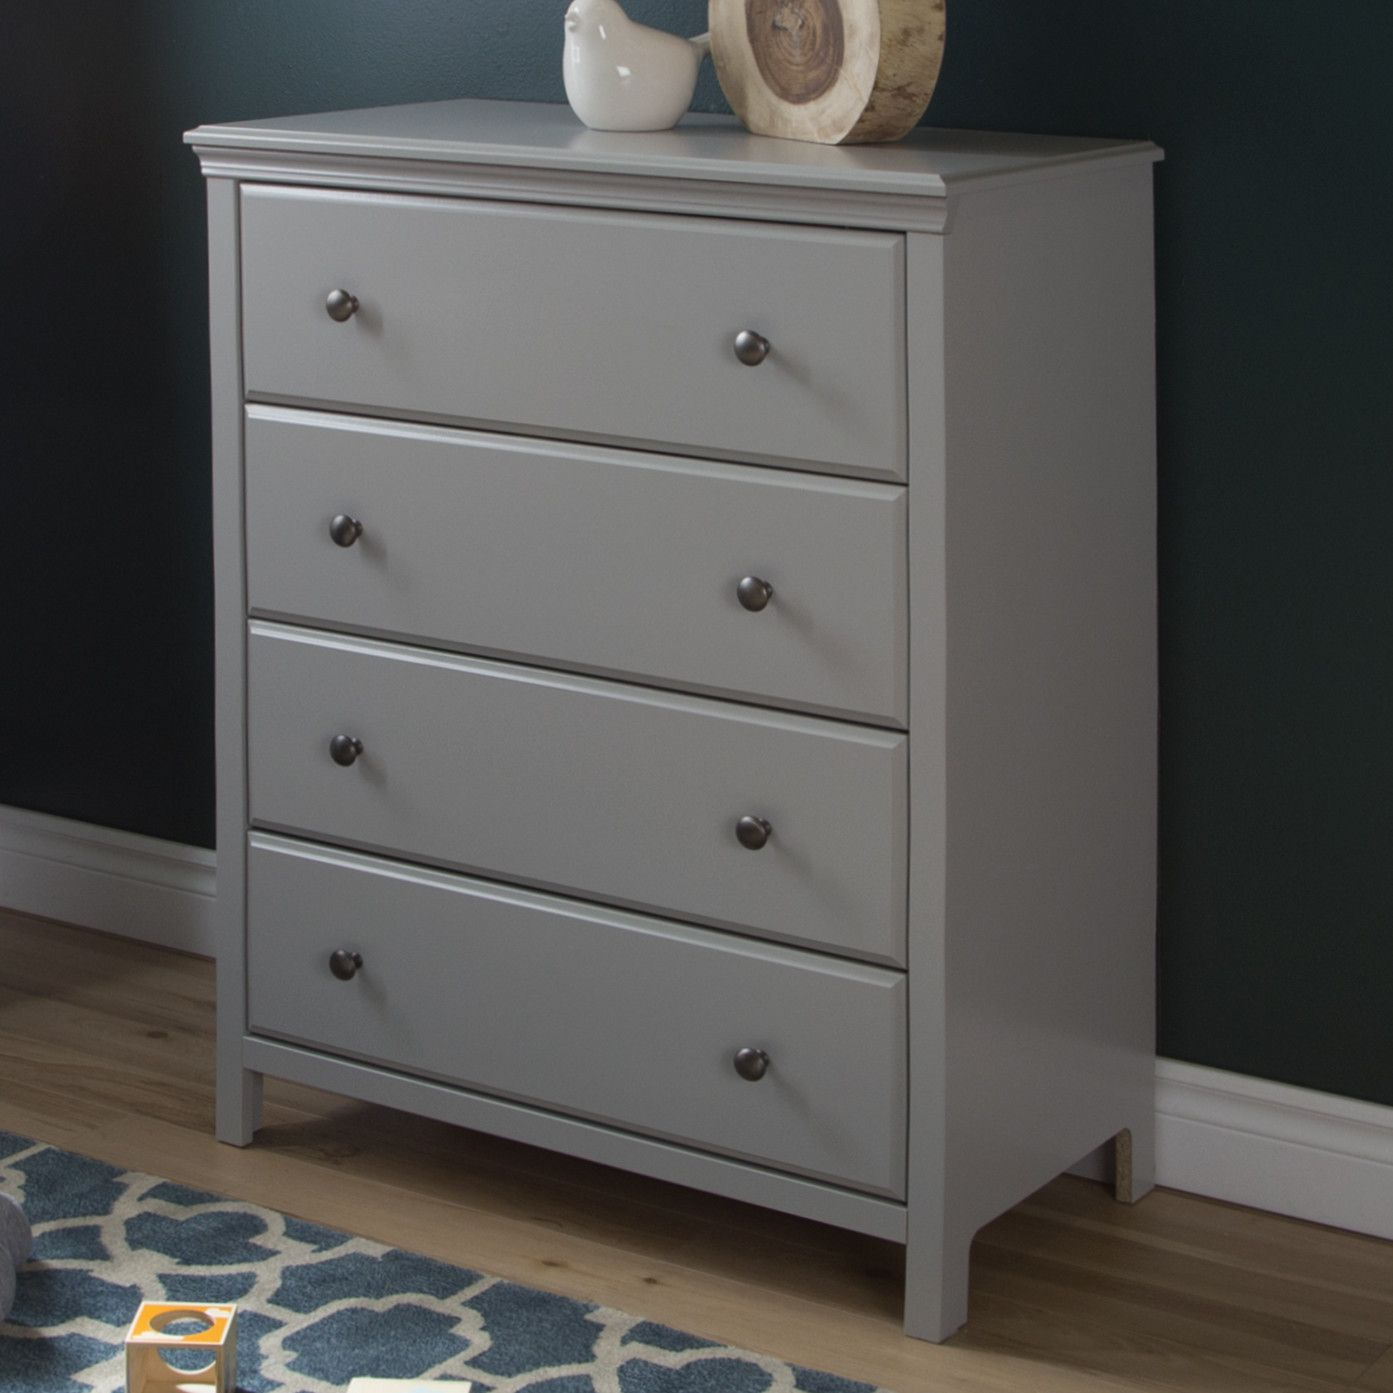 South Shore Cotton Candy 4 Drawer Chest Kids Dressers Changing Table Dresser Dressers And Chests [ 1393 x 1393 Pixel ]